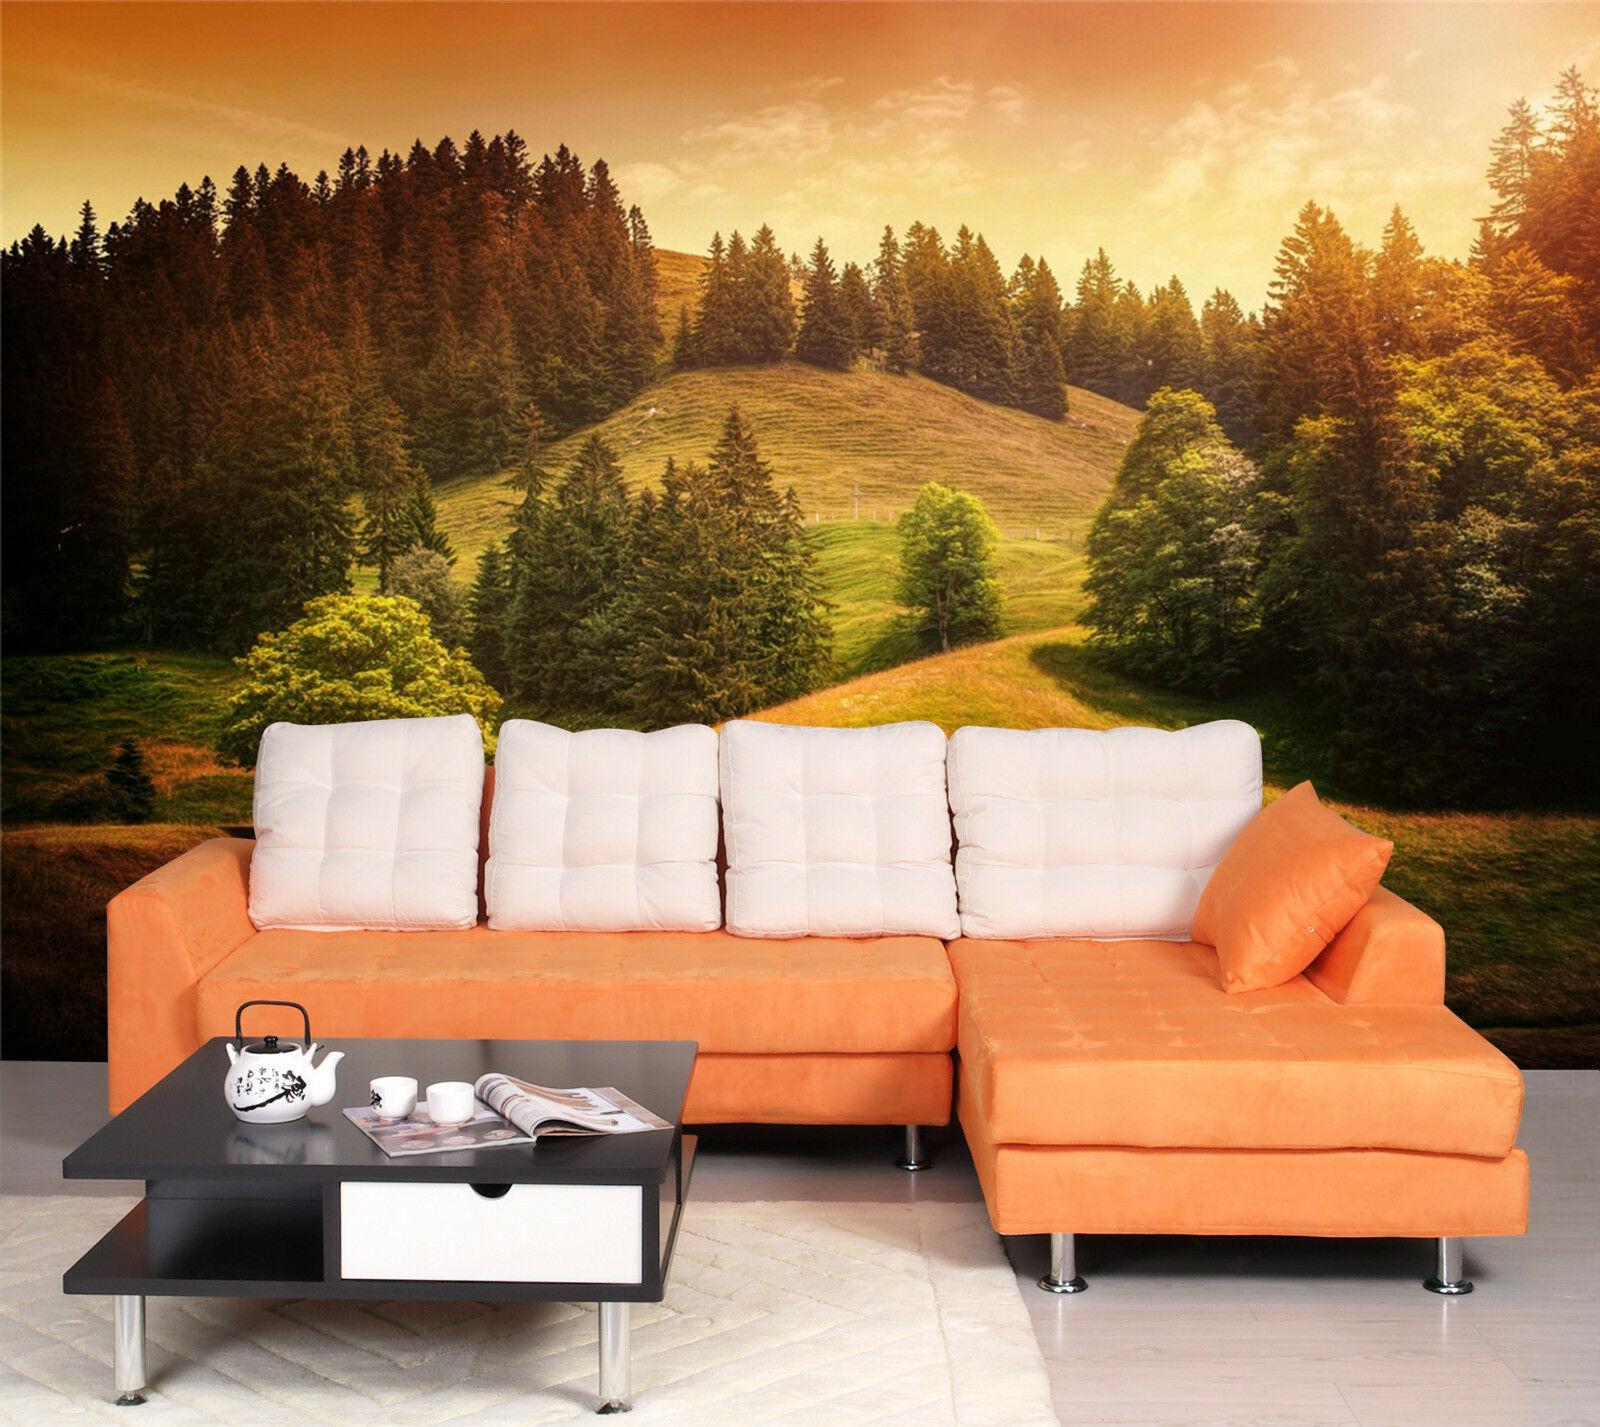 3D Large Mountain Tree Wall Paper Wall Print Decal Wall AJ WALLPAPER CA